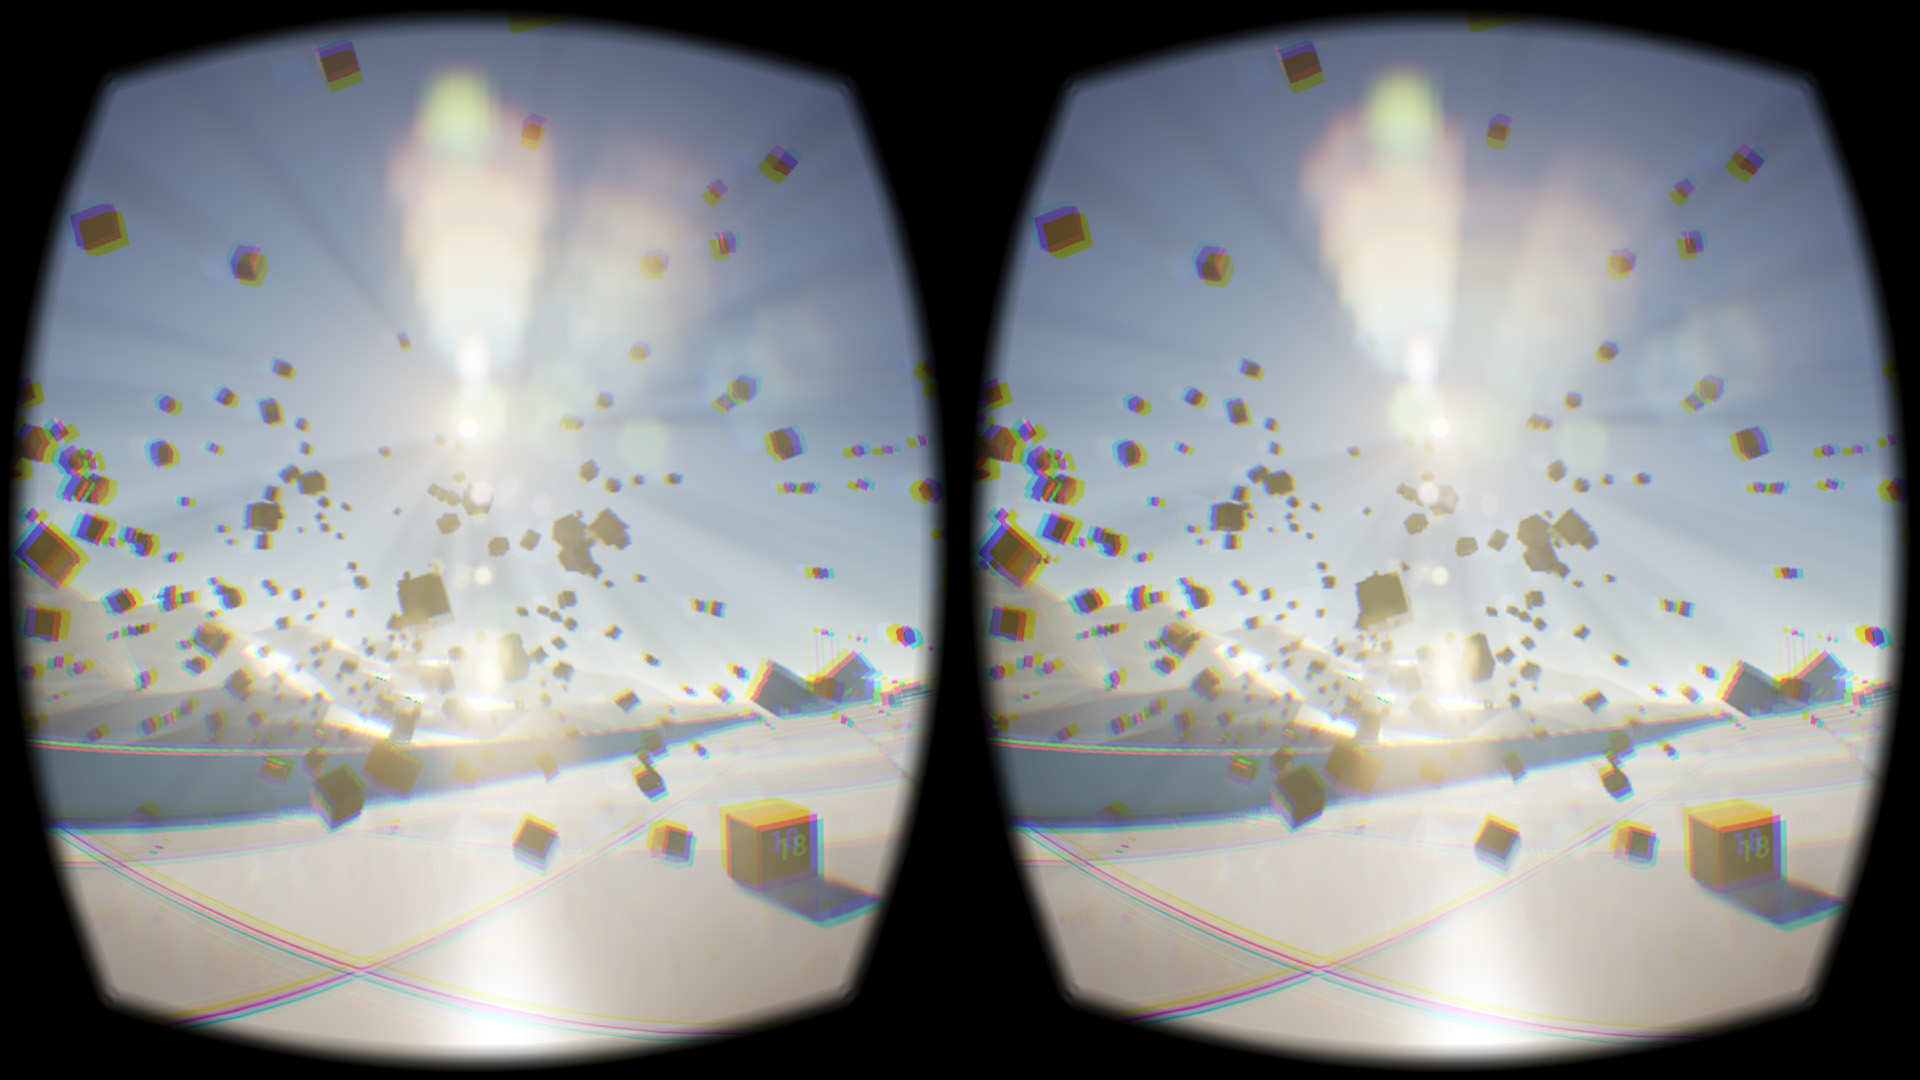 Sample_screen_capture_of_Oculus_rift_development_kit_2_screen_buffer